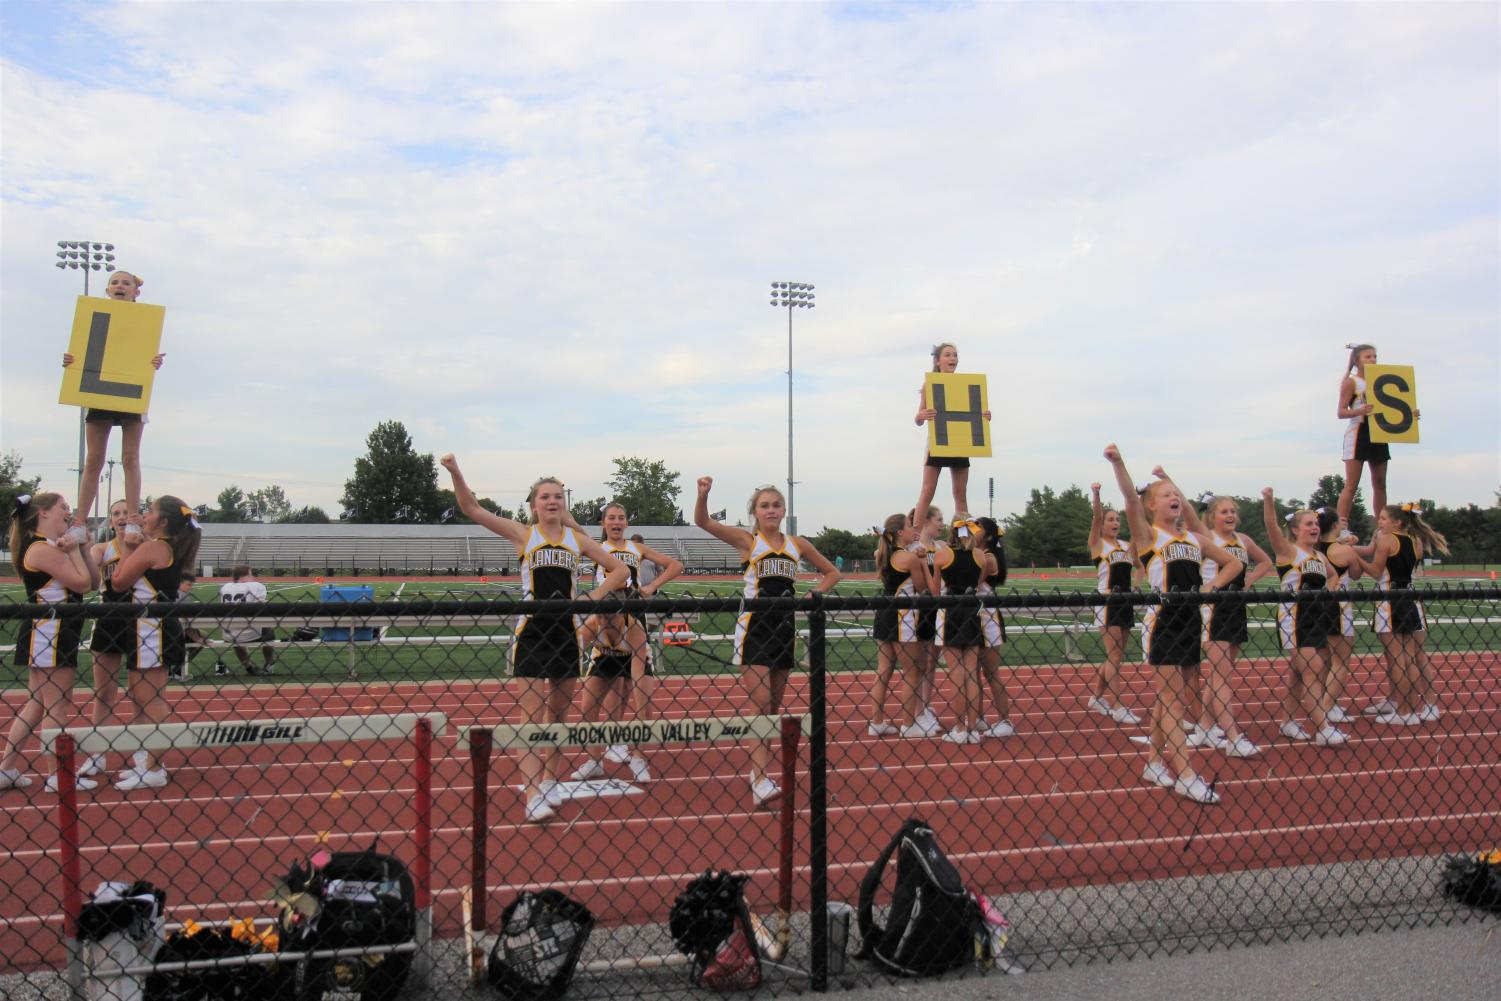 Performing+on+the+track%2C+freshmen+cheerleaders+led+the+event+in+cheering+before+junior+varsity+and+varsity+cheer+performed+later.